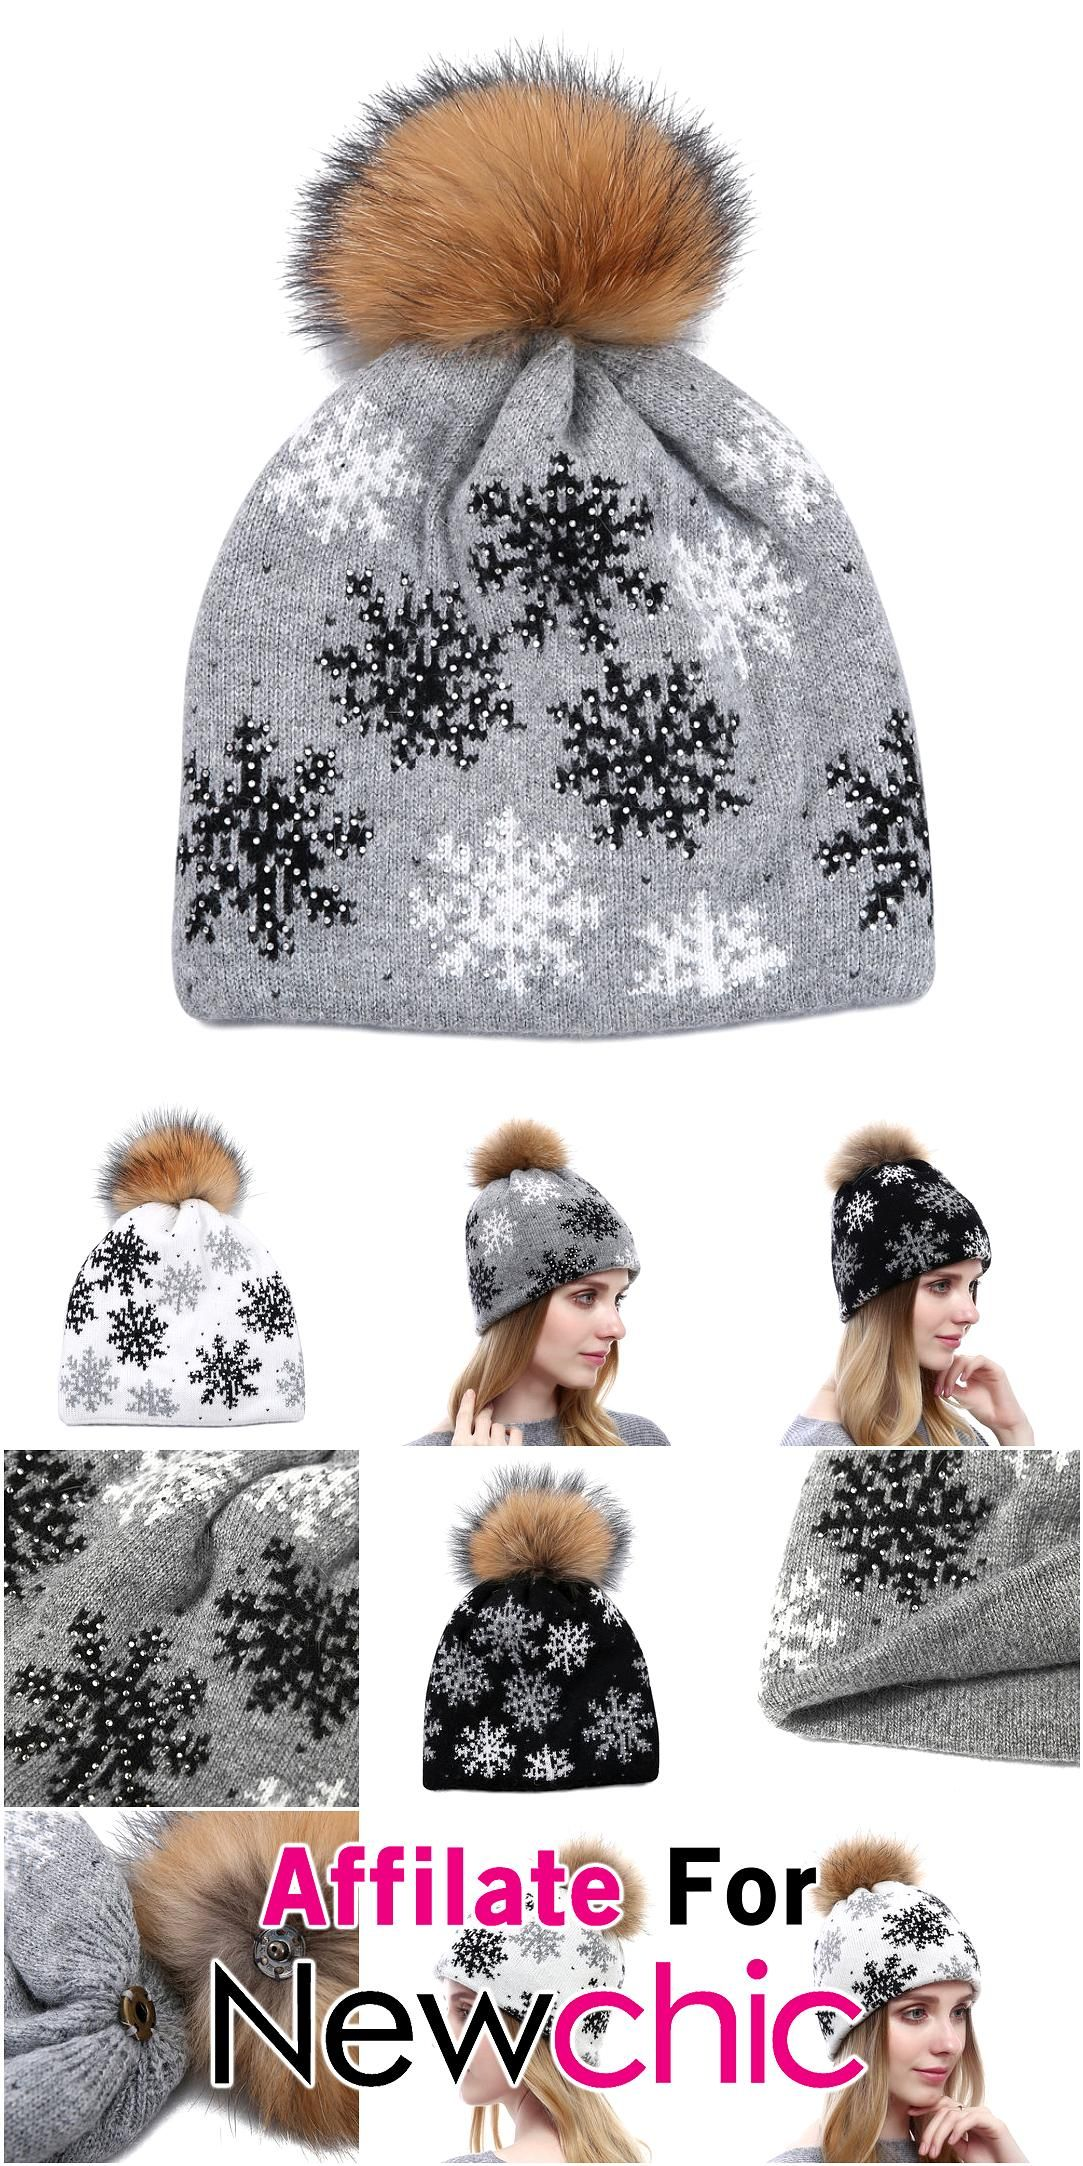 Women Raccoon Fur Pompoms Knitted Hat Skullies Winter Warm Double Lining Design Beanies Hat USD 209 Women Raccoon Fur Pompoms Knitted Hat Skullies Winter Warm Double Lini...